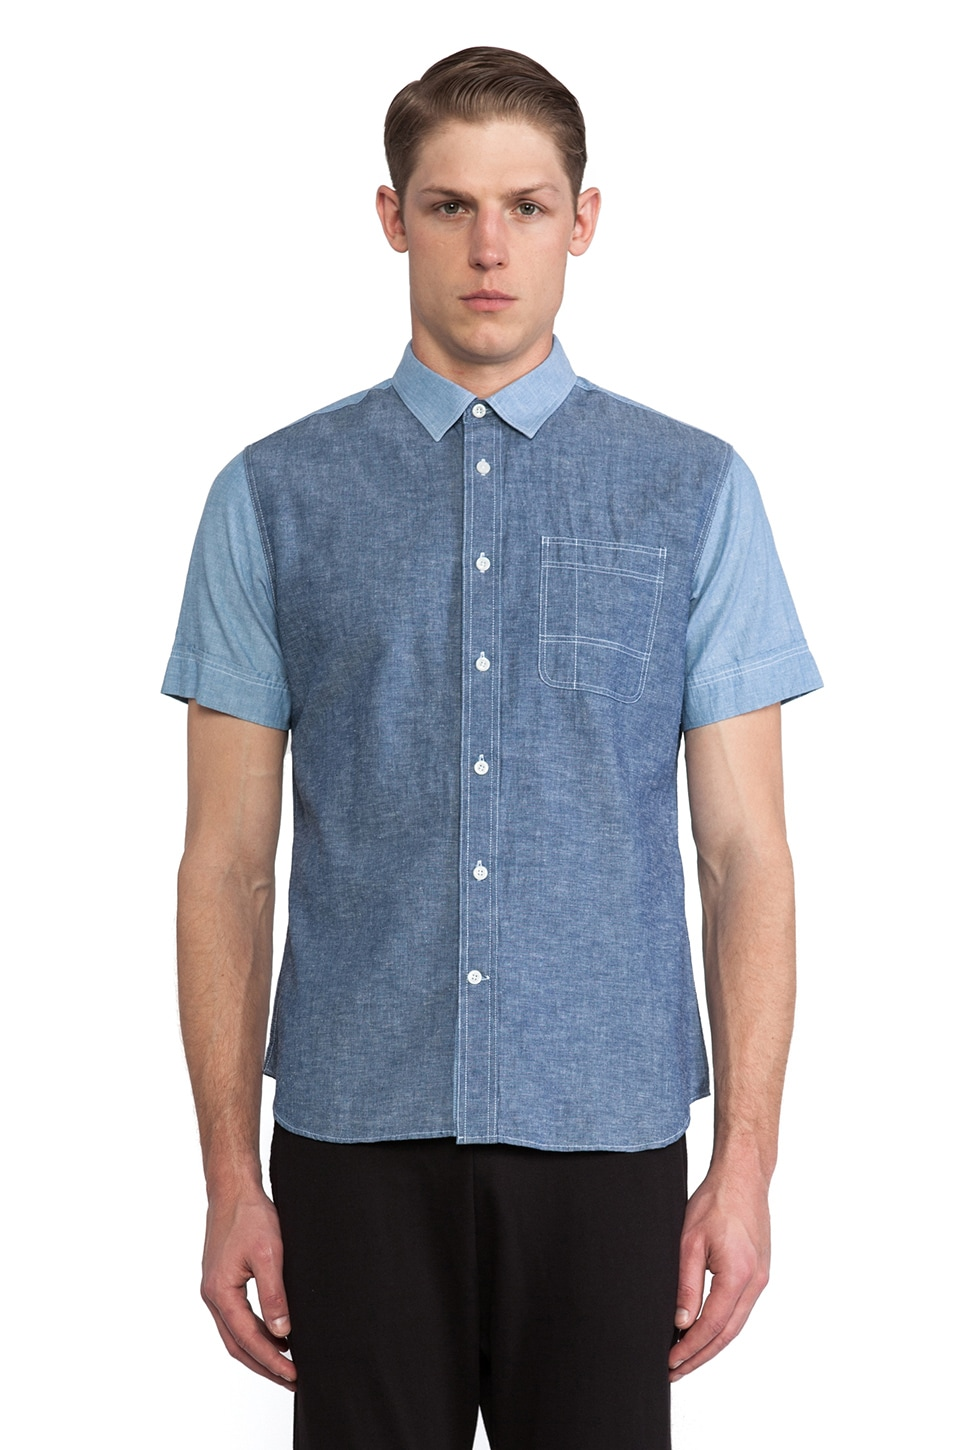 Kai-aakmann Short Sleeve Button Down in Navy